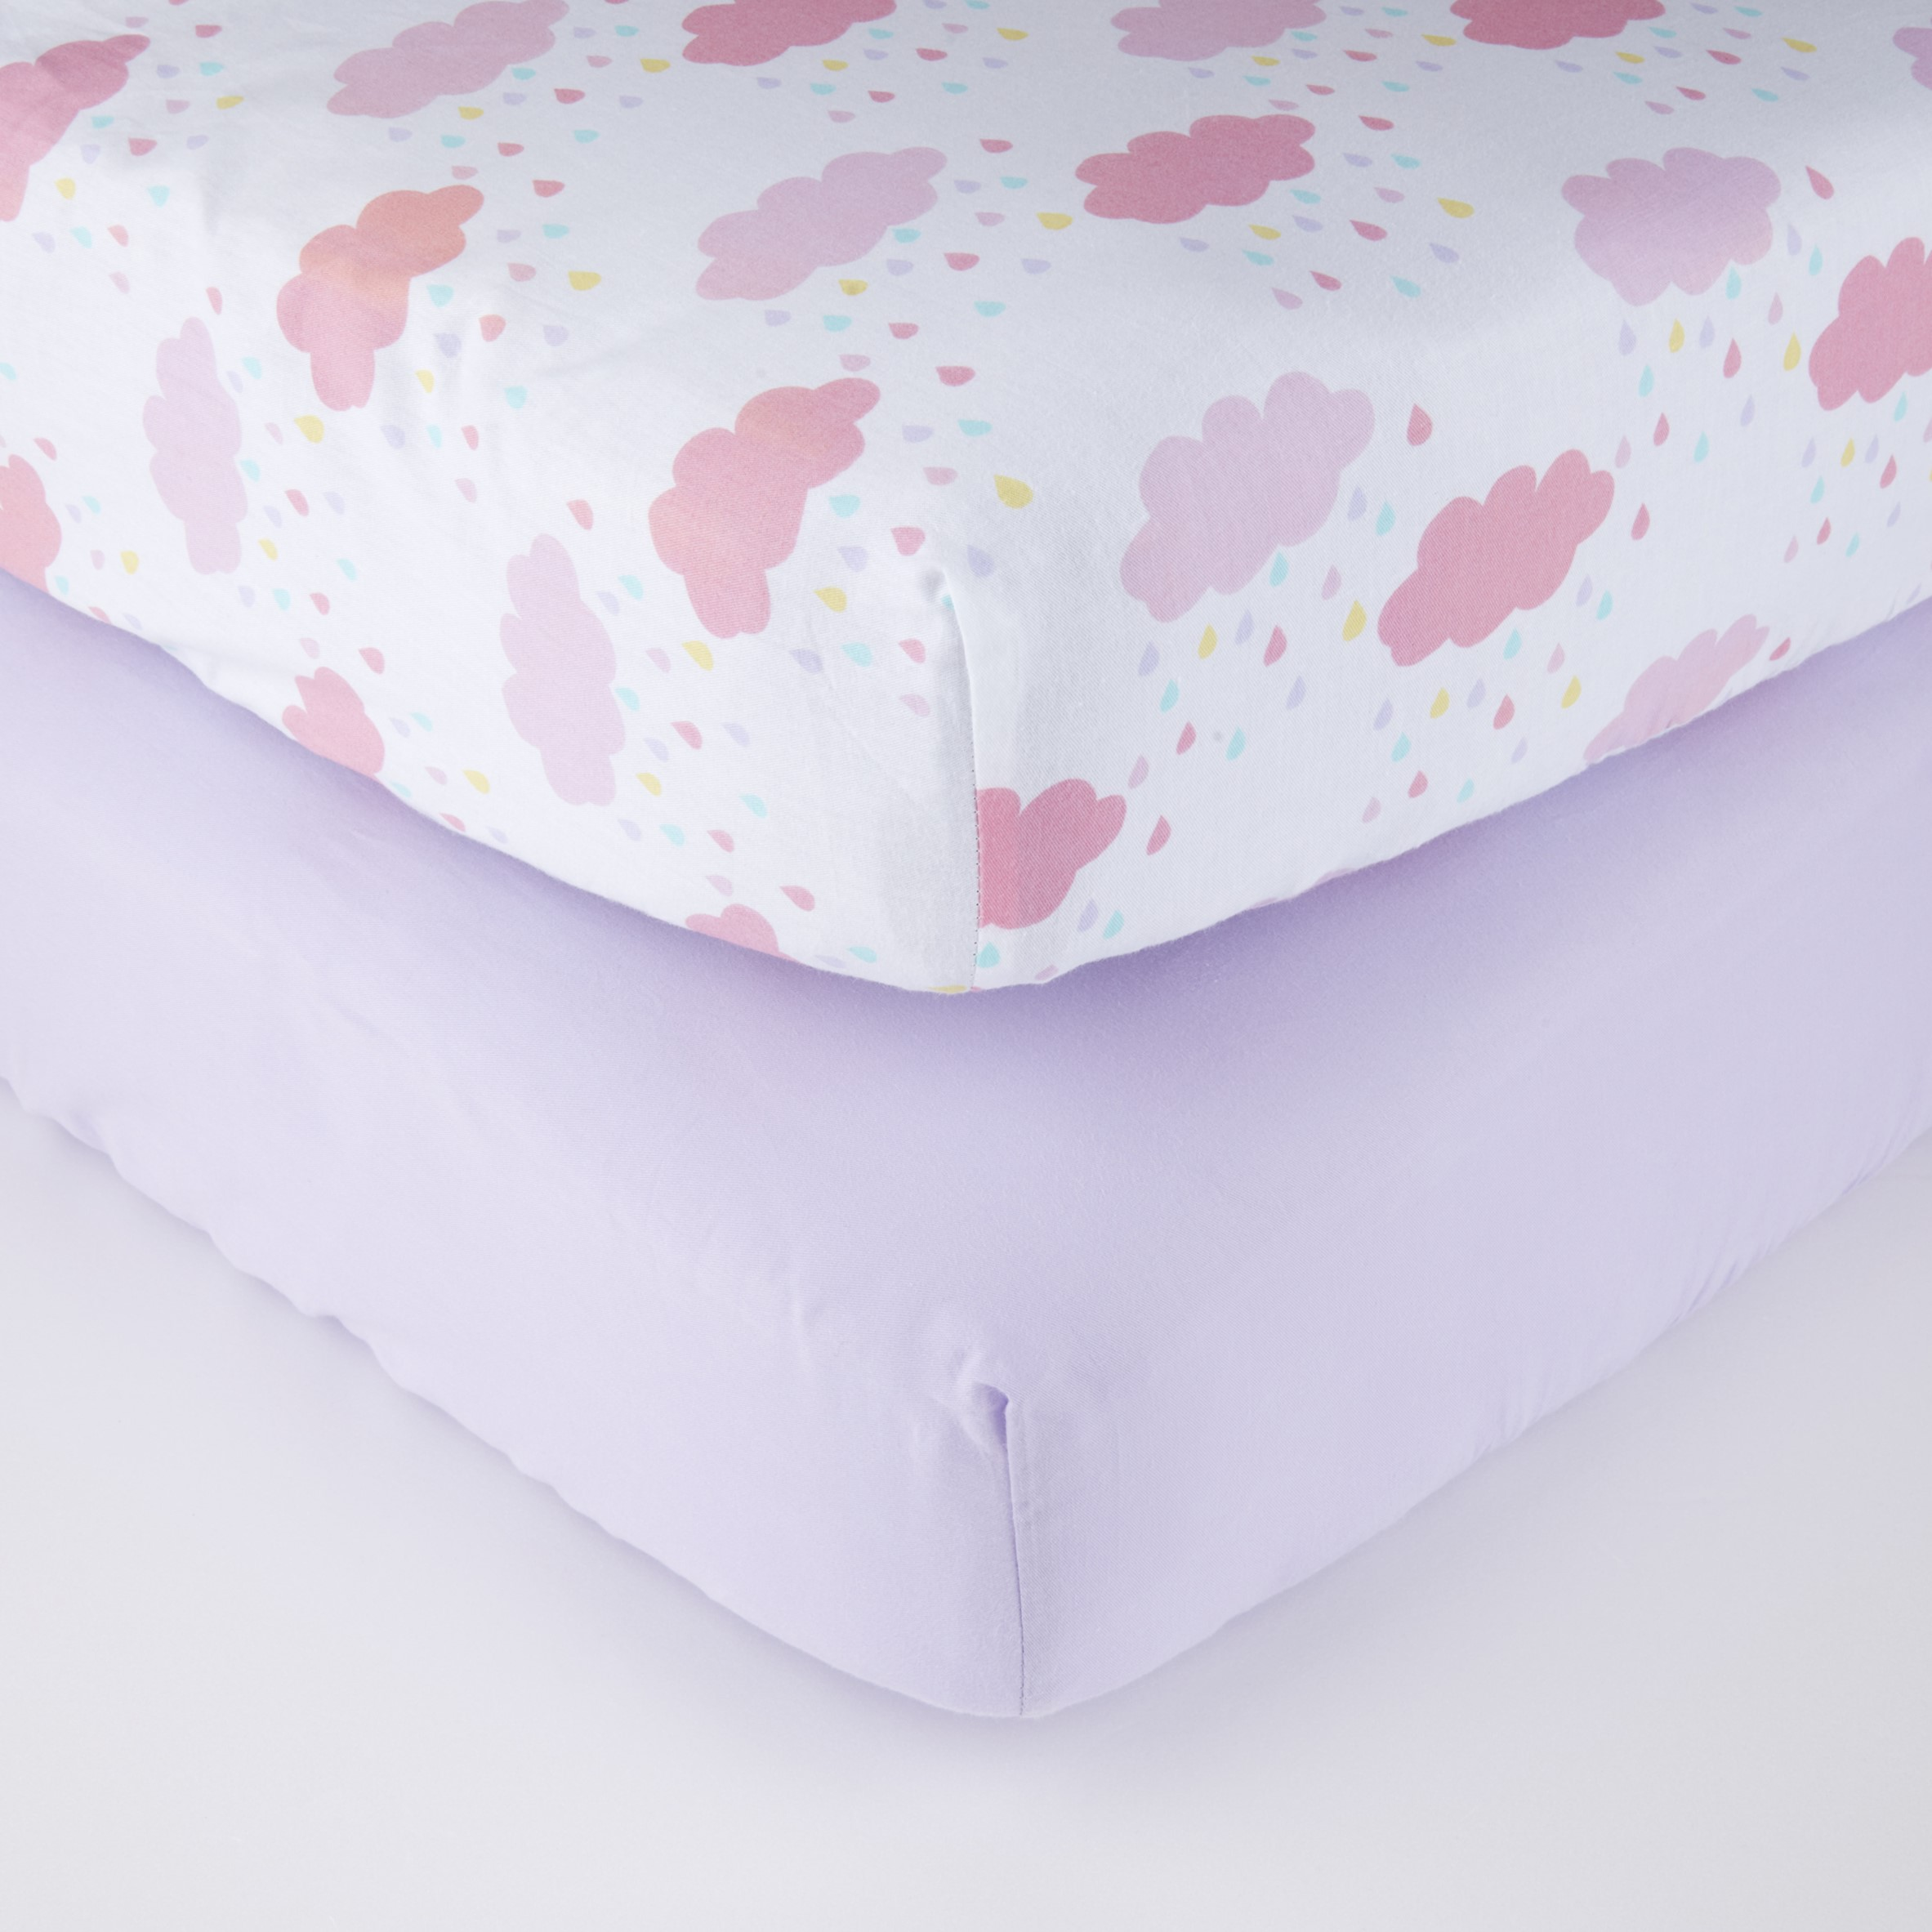 Parent's Choice 100% Cotton Fitted Crib Sheets, Rainbow Drops 2pk